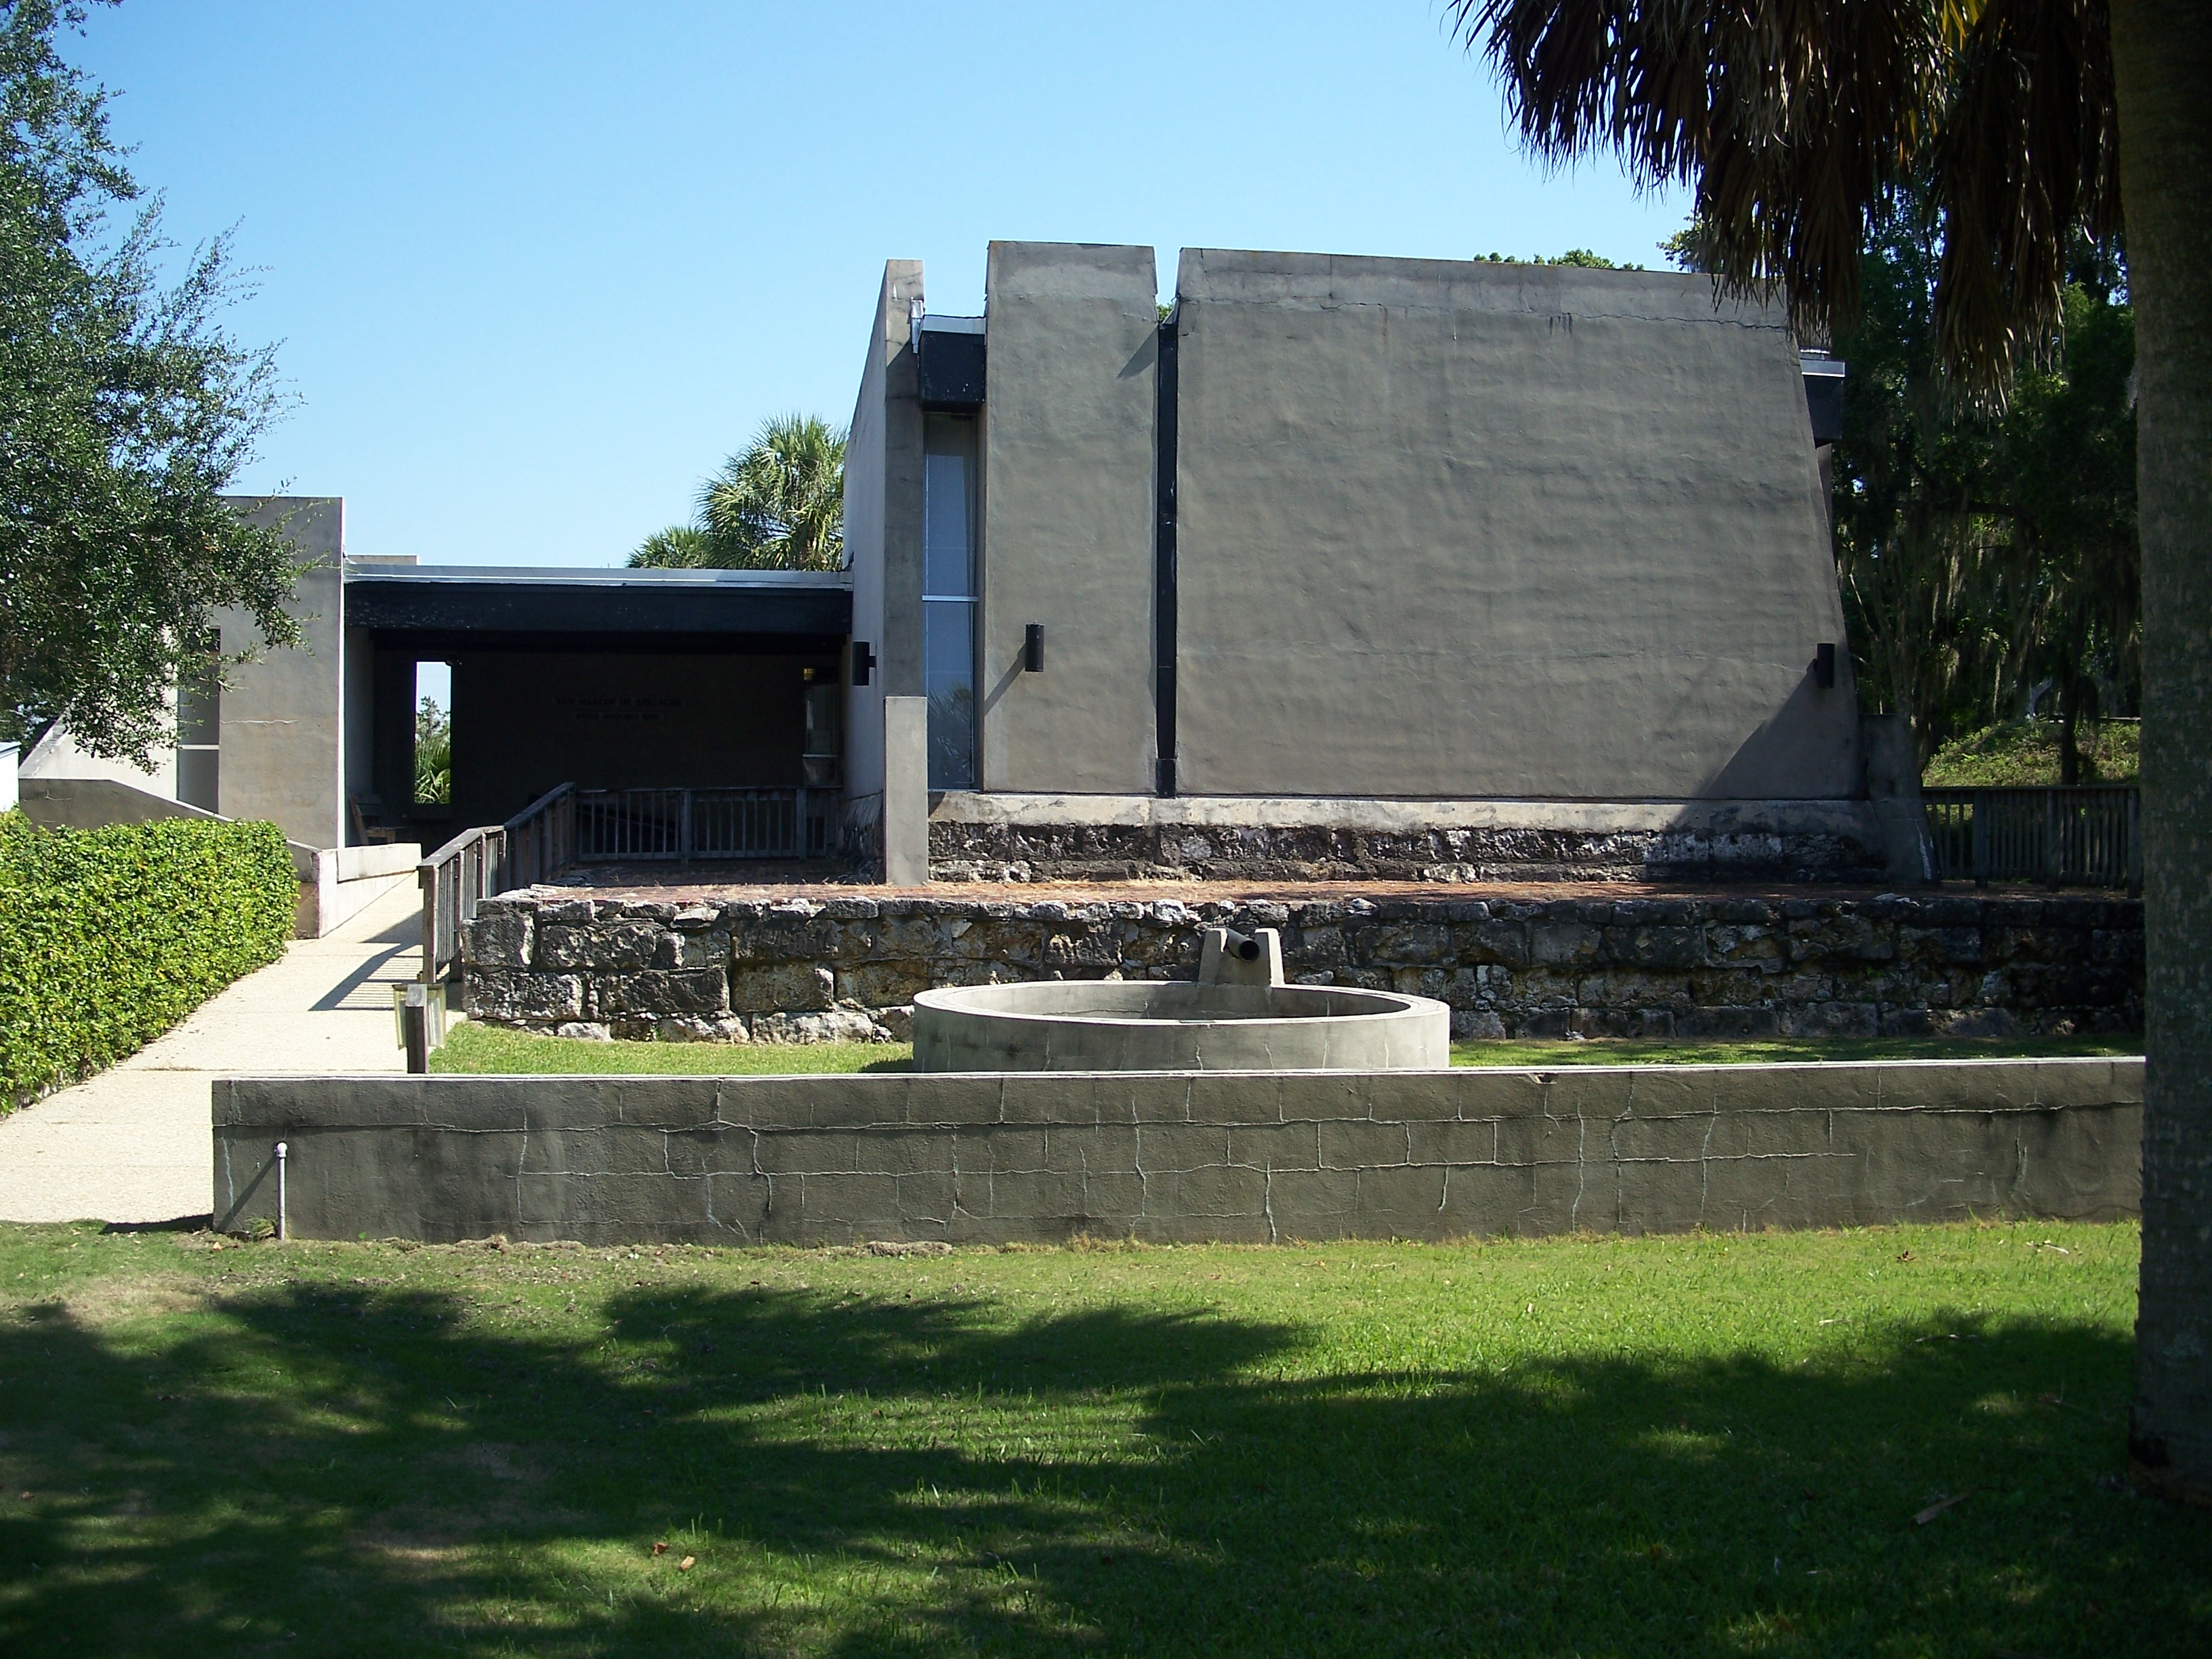 The museum at the park features pottery and tools from the original fort are on display, as well as interpretive displays describing the site's history.